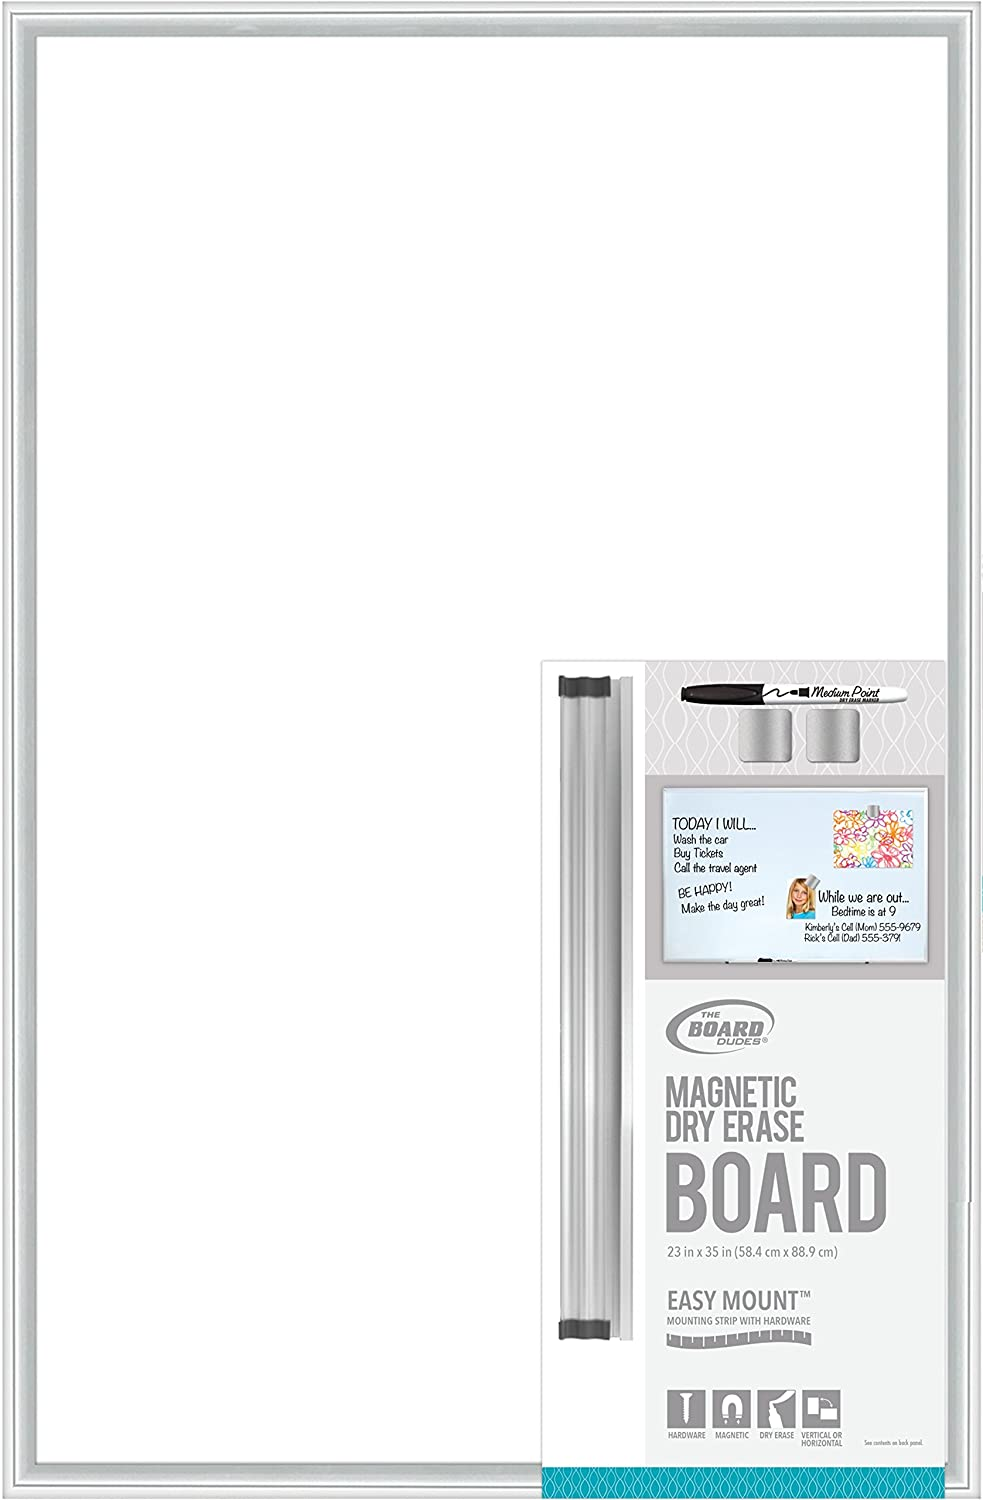 Board Dudes Magnetic Dry Erase Aluminum framed board 35 x23 The Board Dudes CNT67